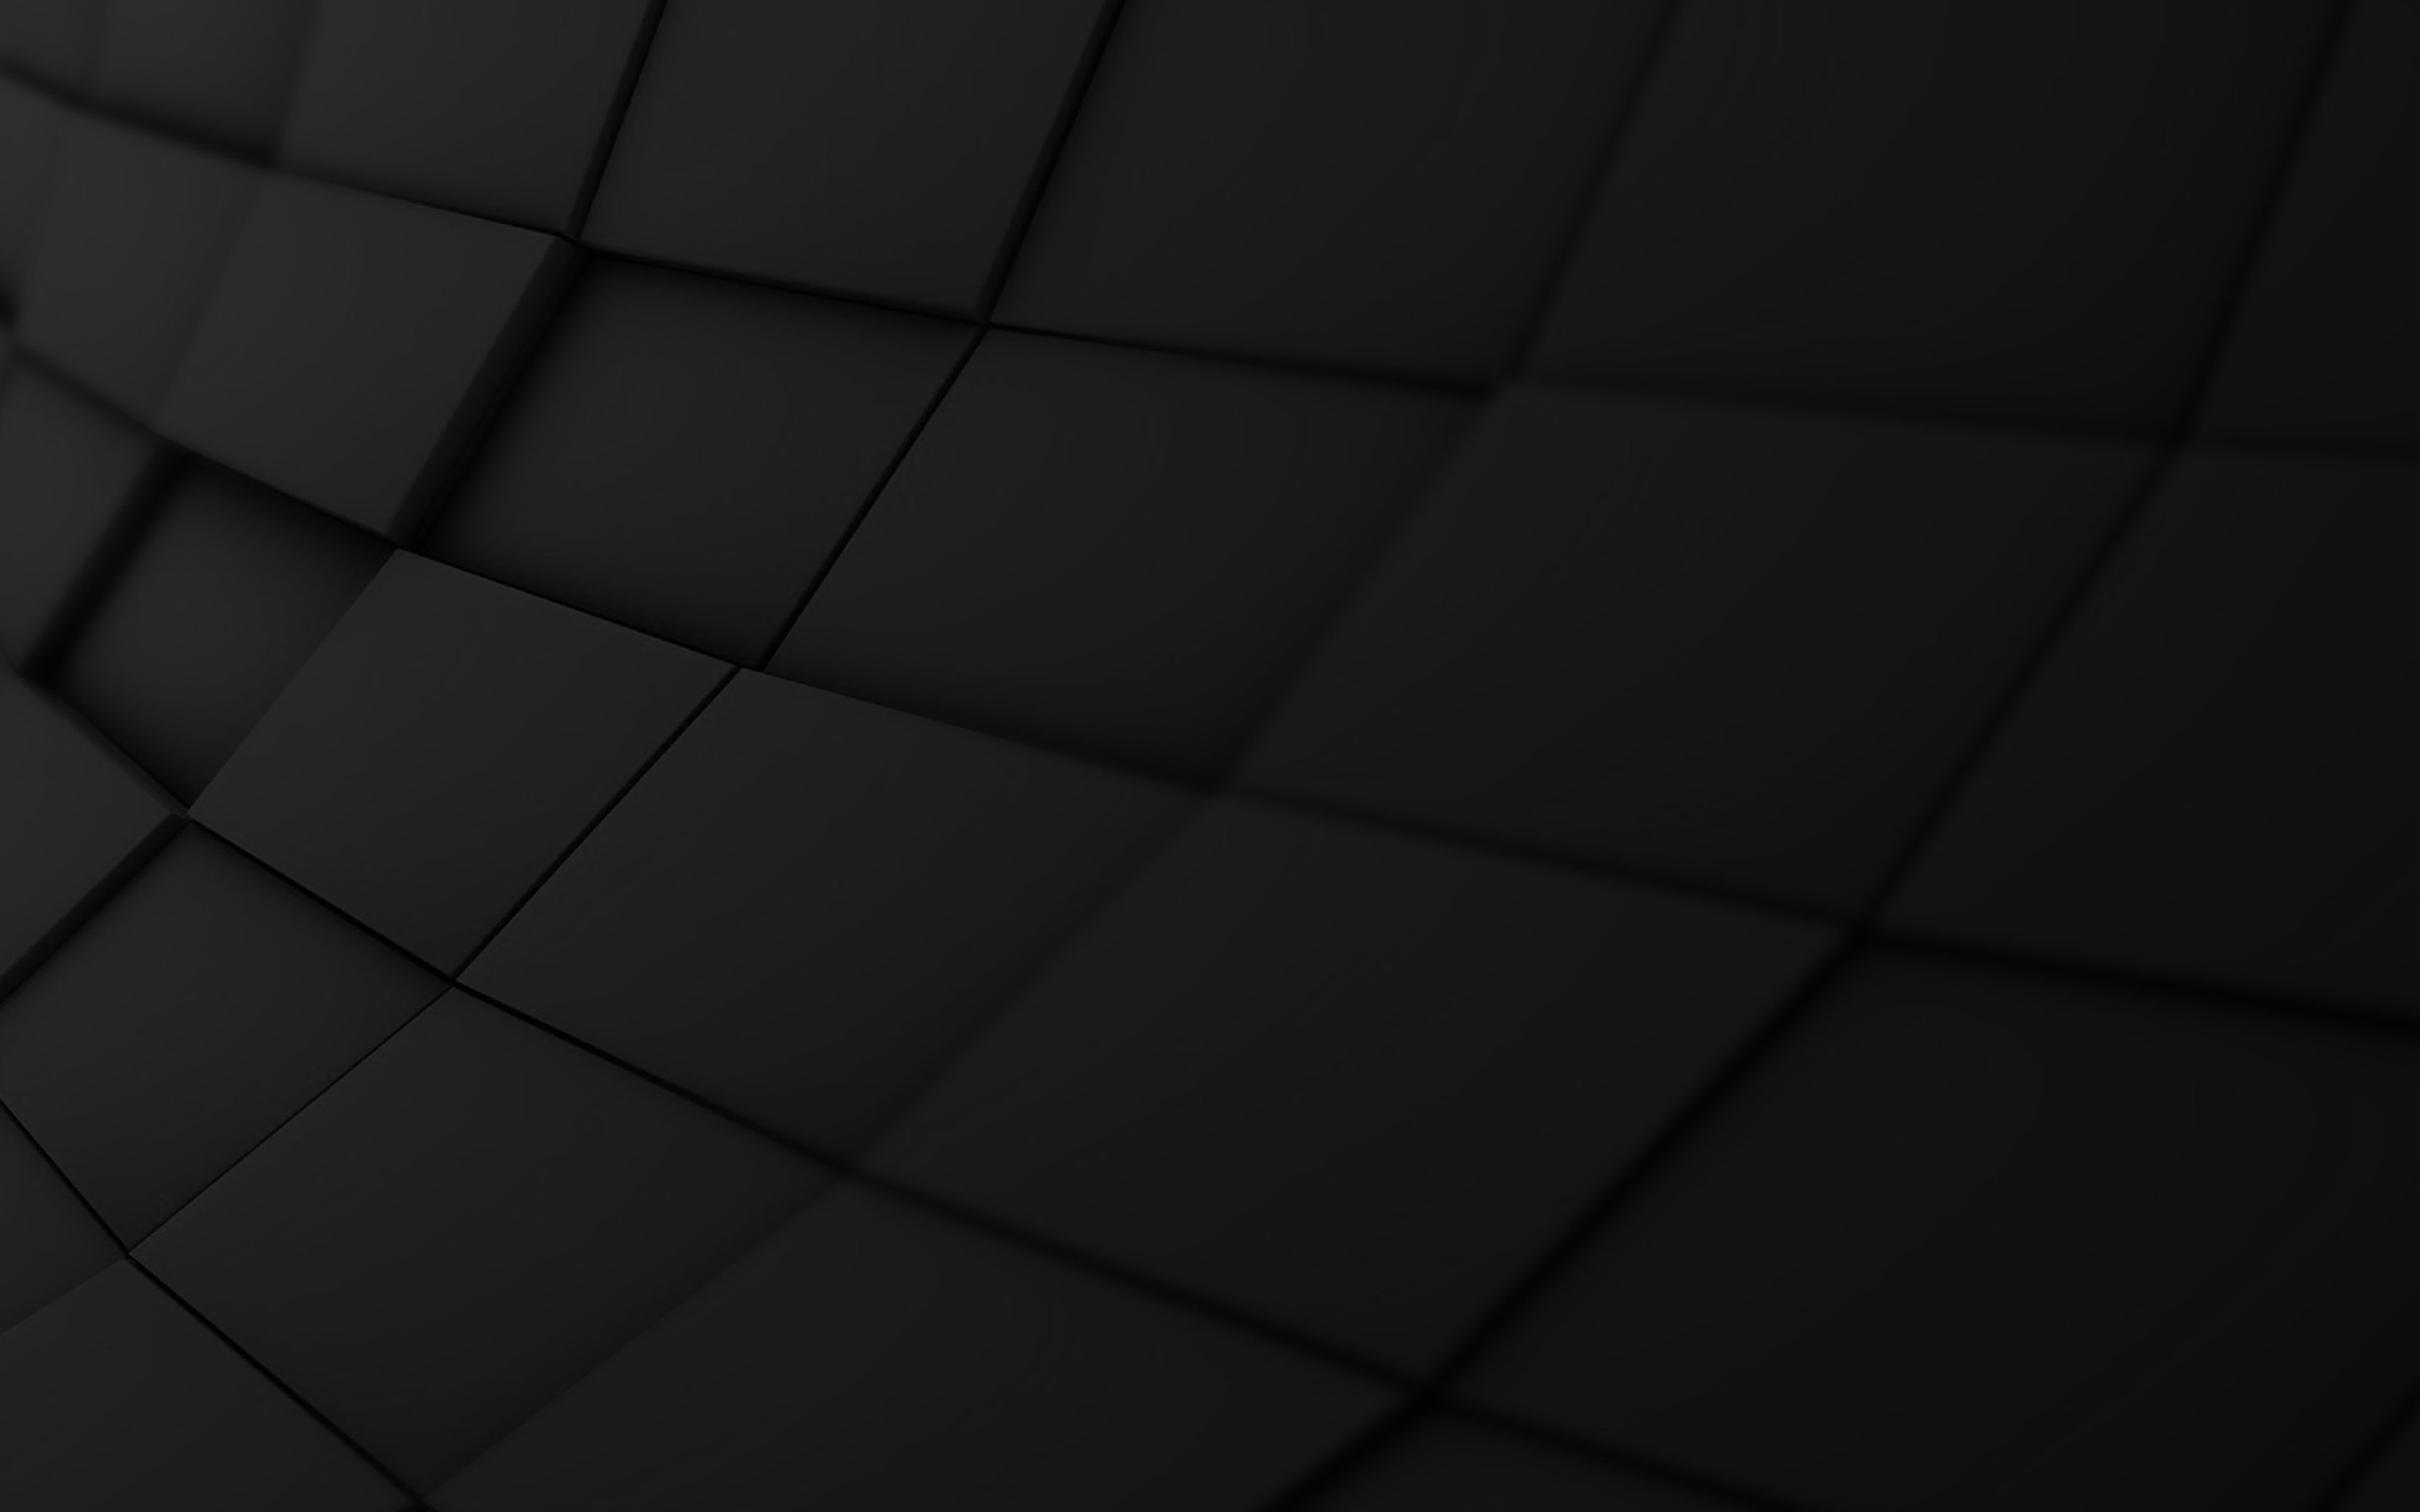 Abstract Amoled Wallpapers